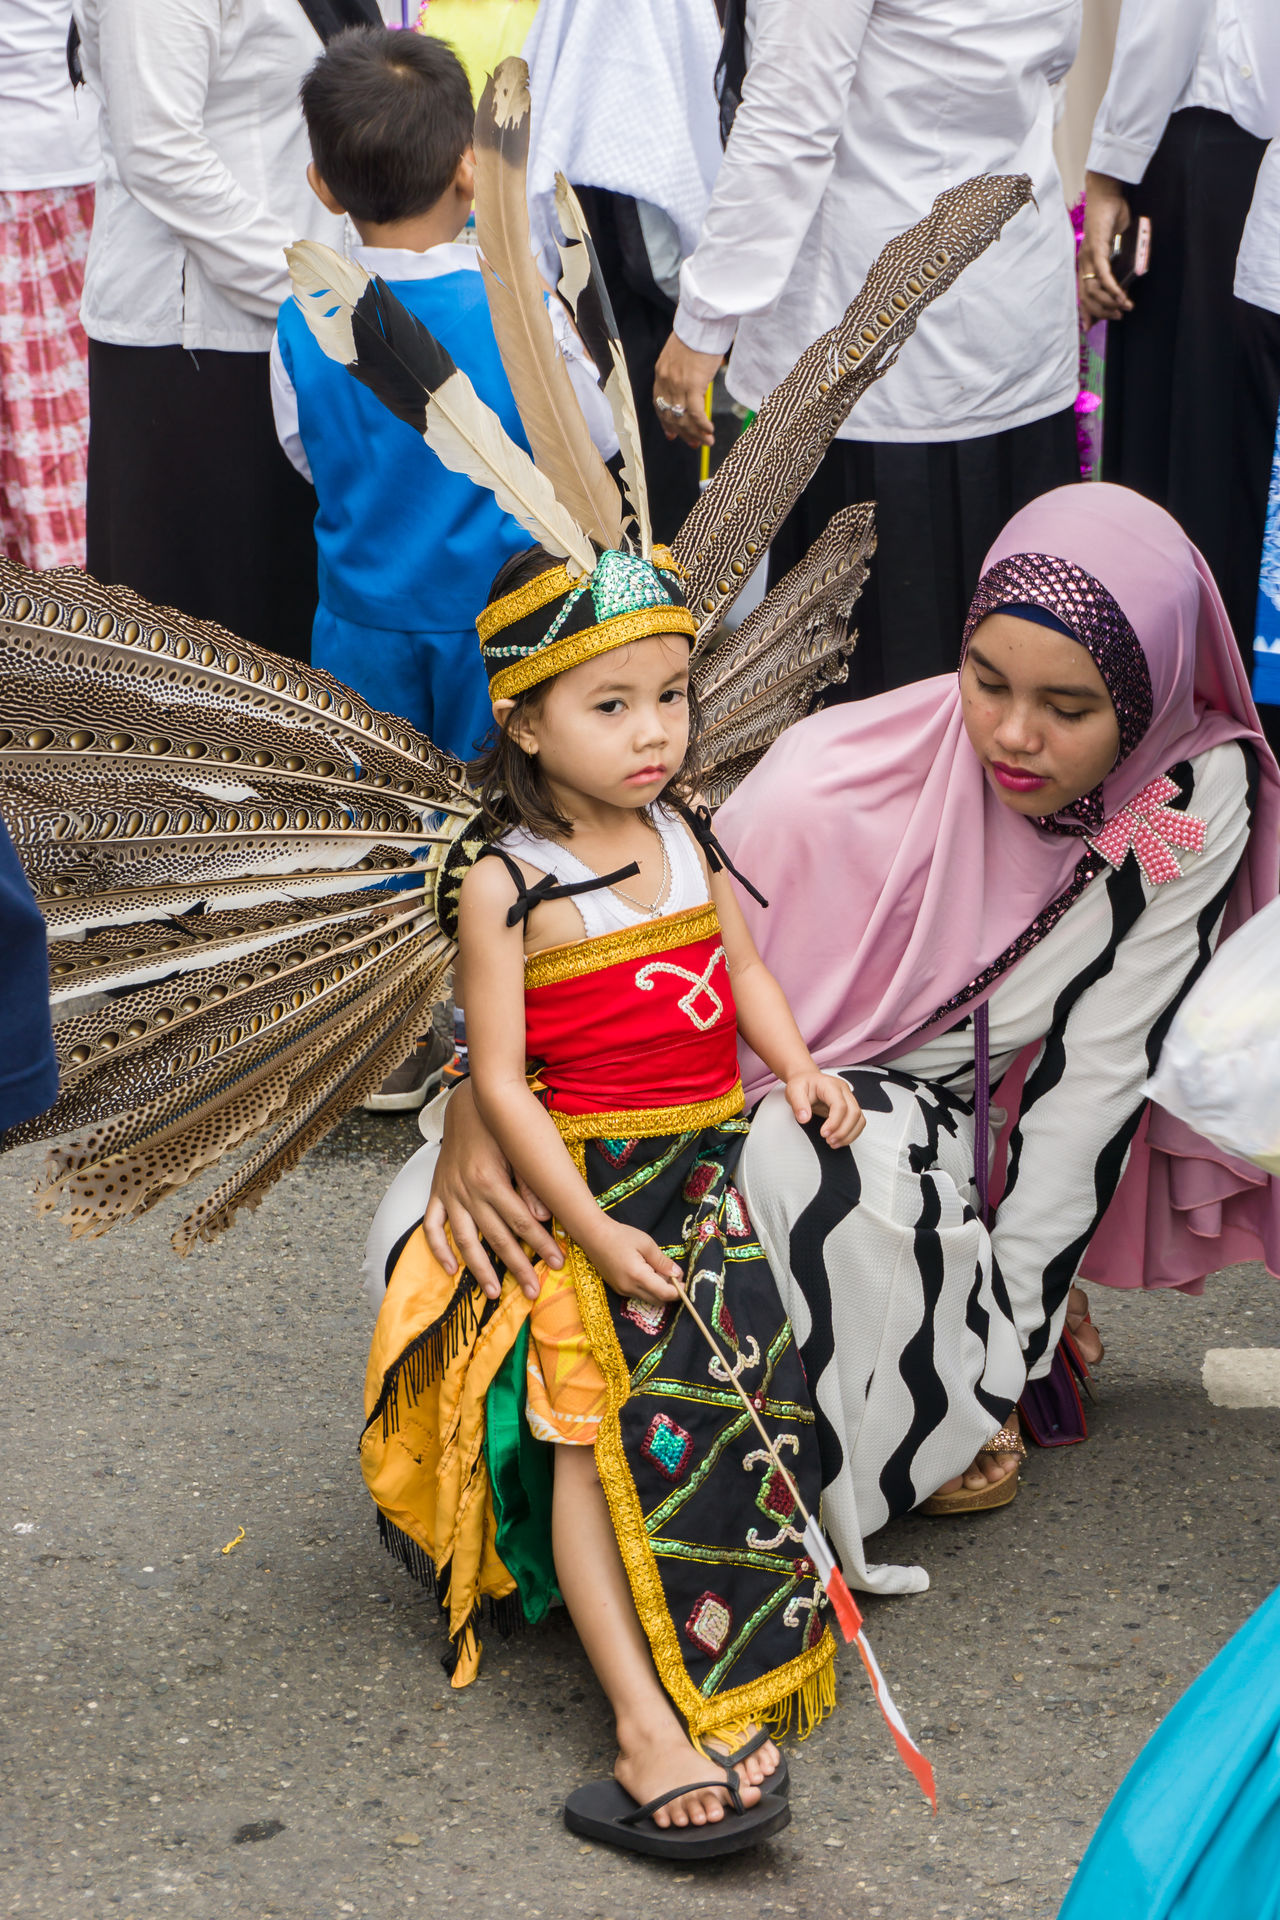 Dayak tribe clothing at kindergarten carnival Adult Carnival Crowds And Details Child Childhood Day Dayak Costume EyeEmNewHere Full Length Girls Kindergarten Looking At Camera Mother Mother And Daughter Outdoors People Portrait Standing Street Photography Traditional Clothing Brazil Carnival Crowds